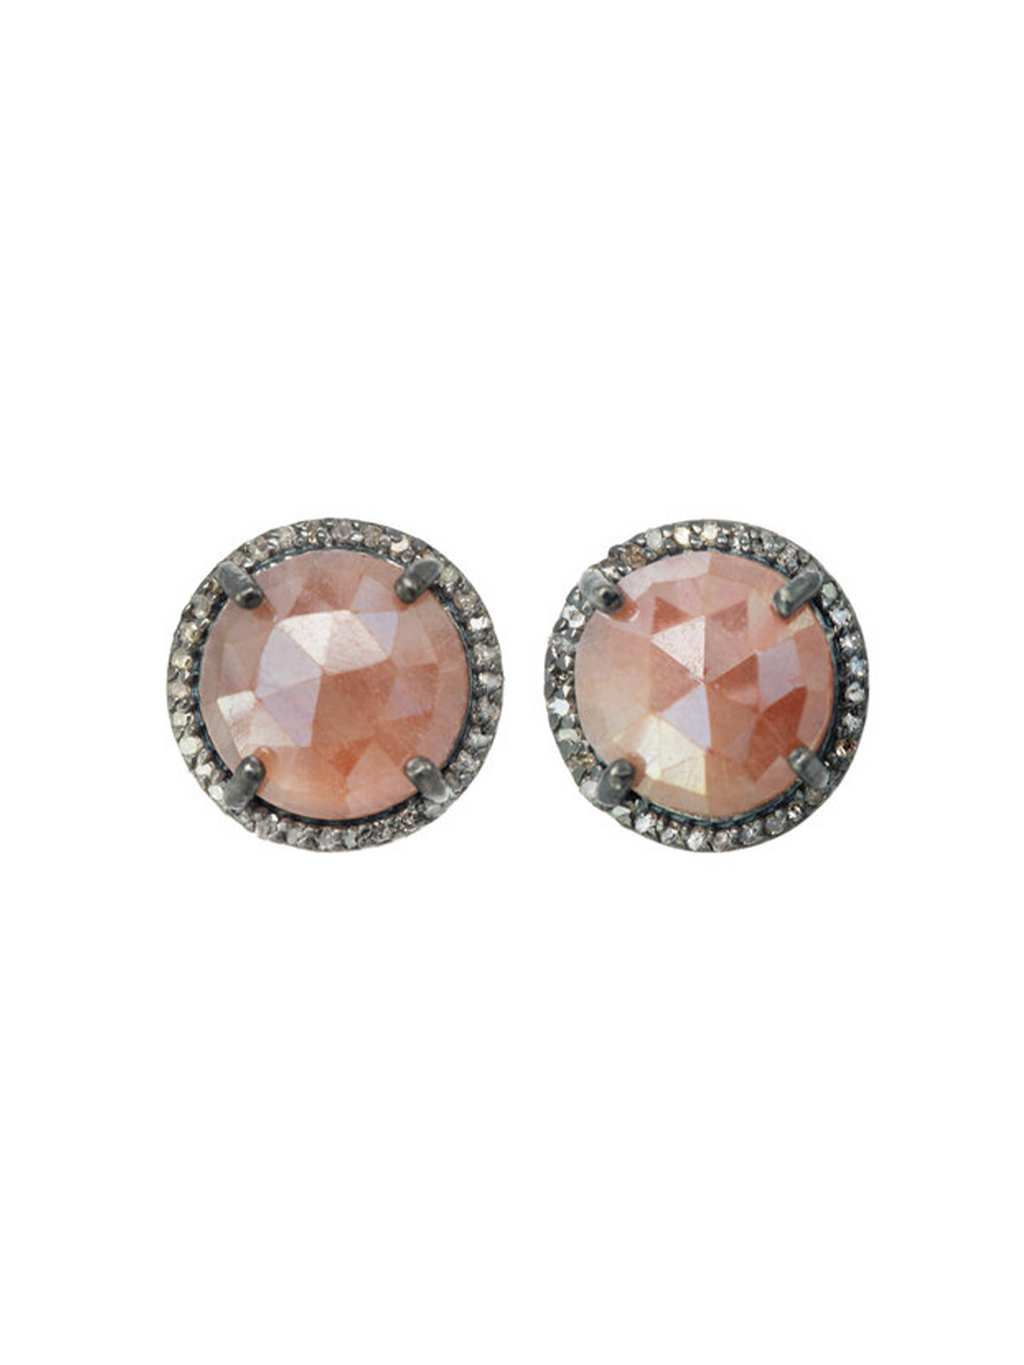 Margo Morrison Faceted Coated Mystic Pink Quartz and Diamond Stud Earrings